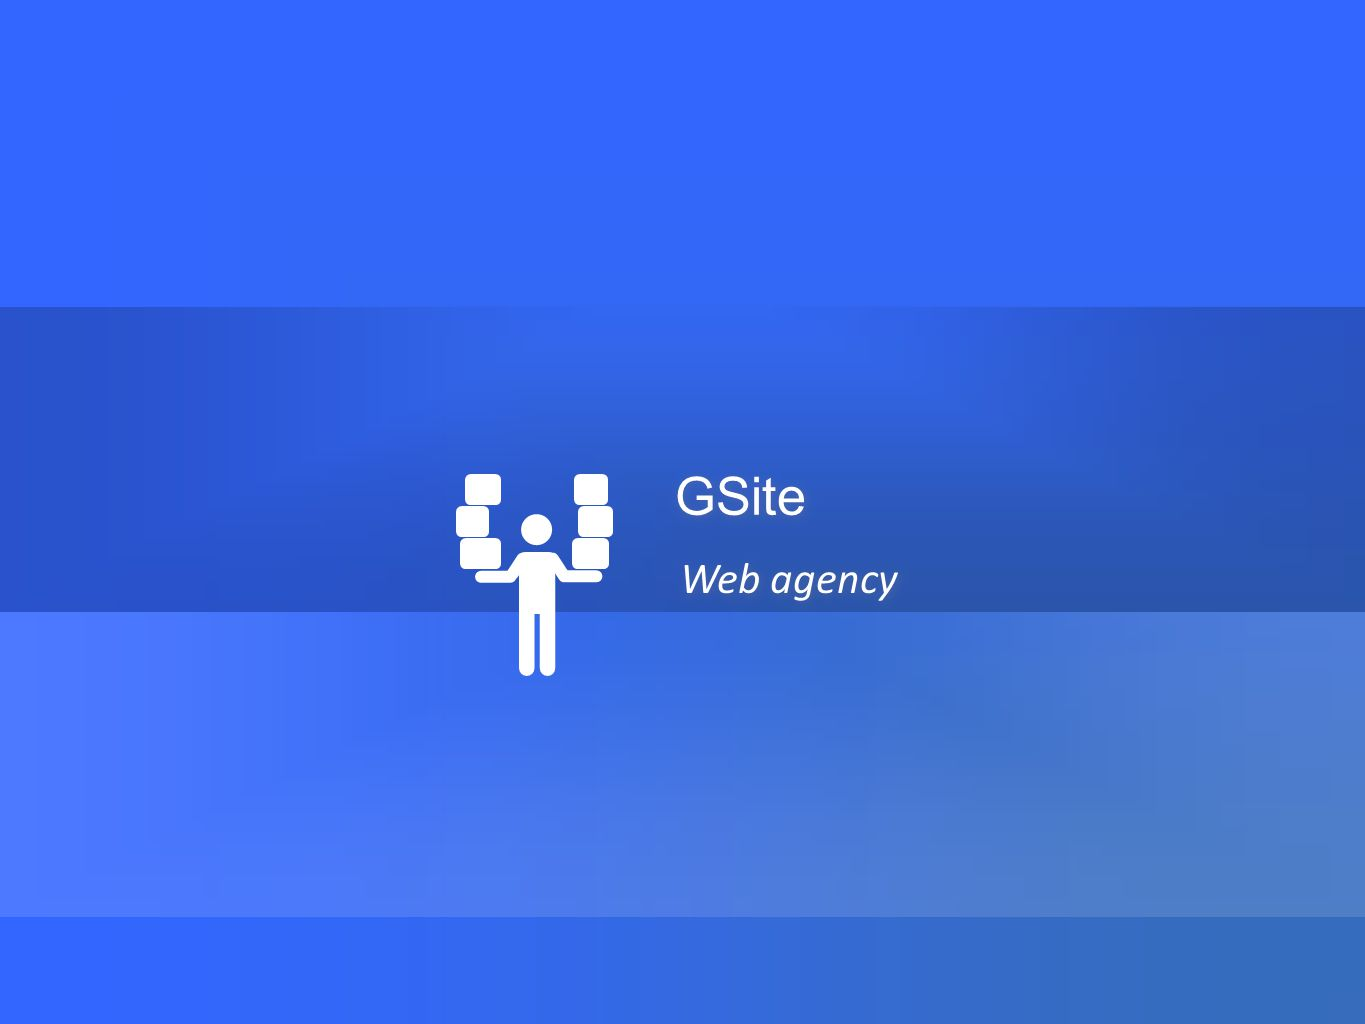 Estated www.gsite.ch Interpretiamo le vostre idee in base alle vostre esigenze 2 2 AGENZIA SITI WEB SEO E SEM SOCIAL STRATEGIA ANALISI CONTATTO BE GSITE